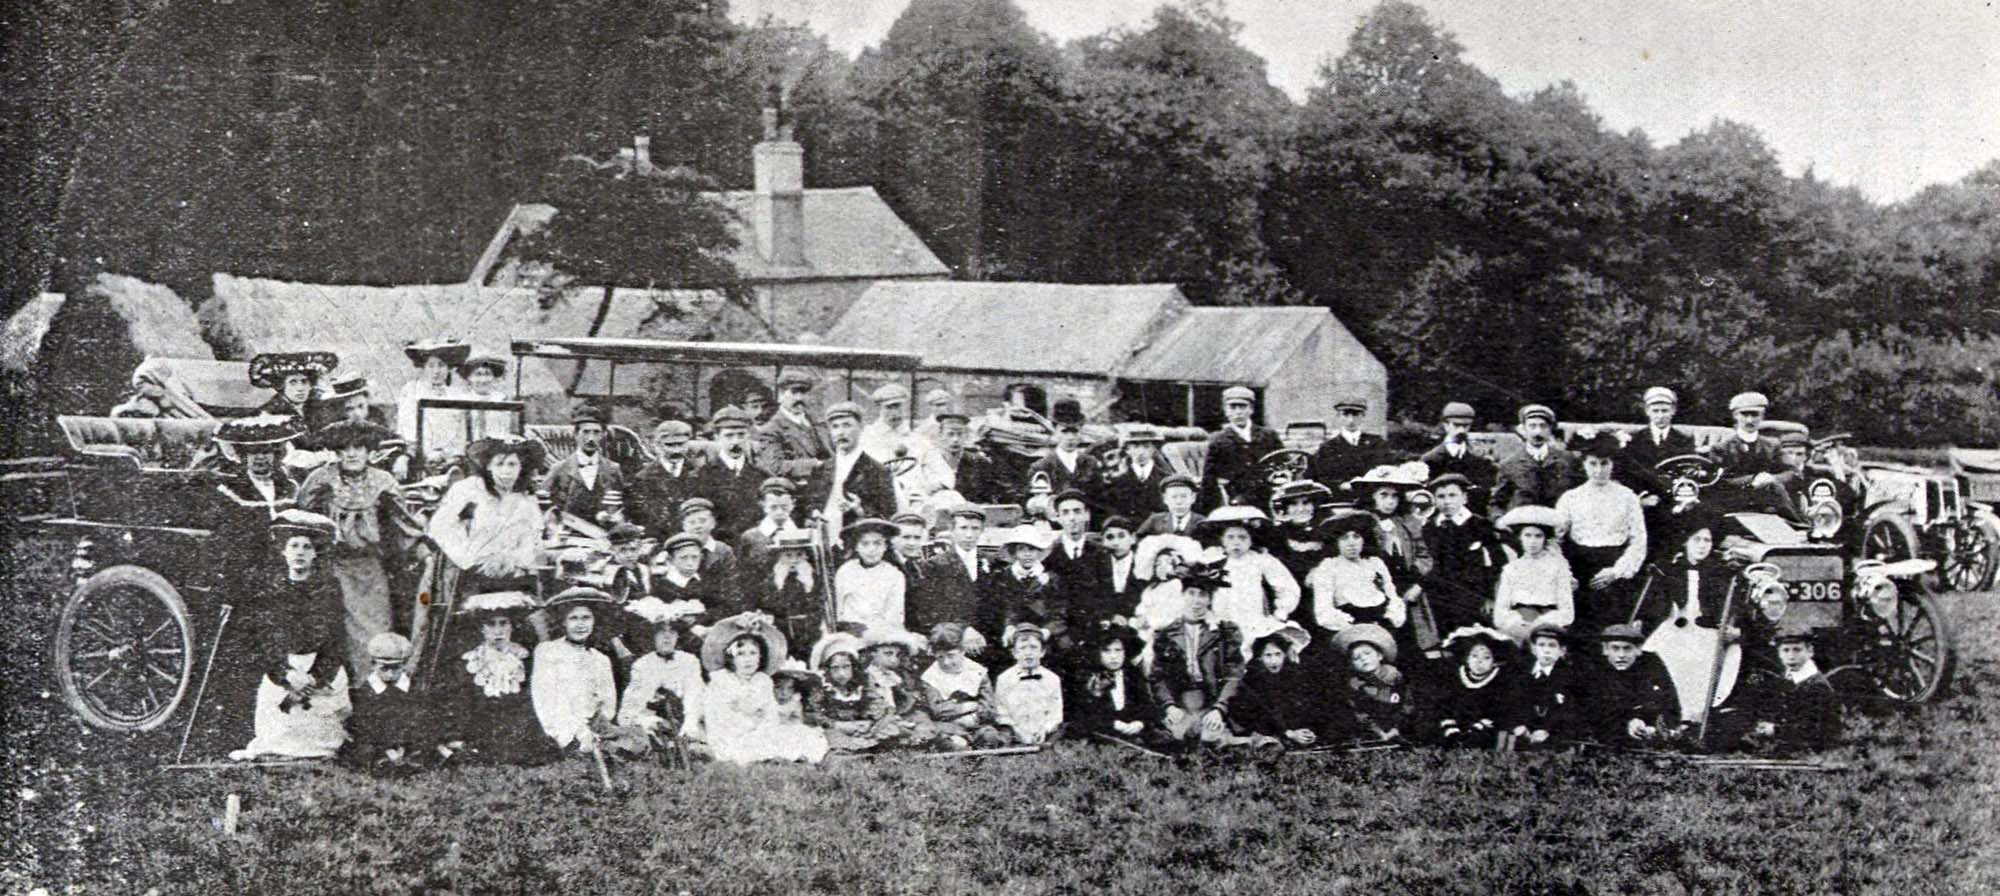 Excursion for disabled children, arranged by the Leicestershire Automobile Club, 1905 - Mosaic 1898